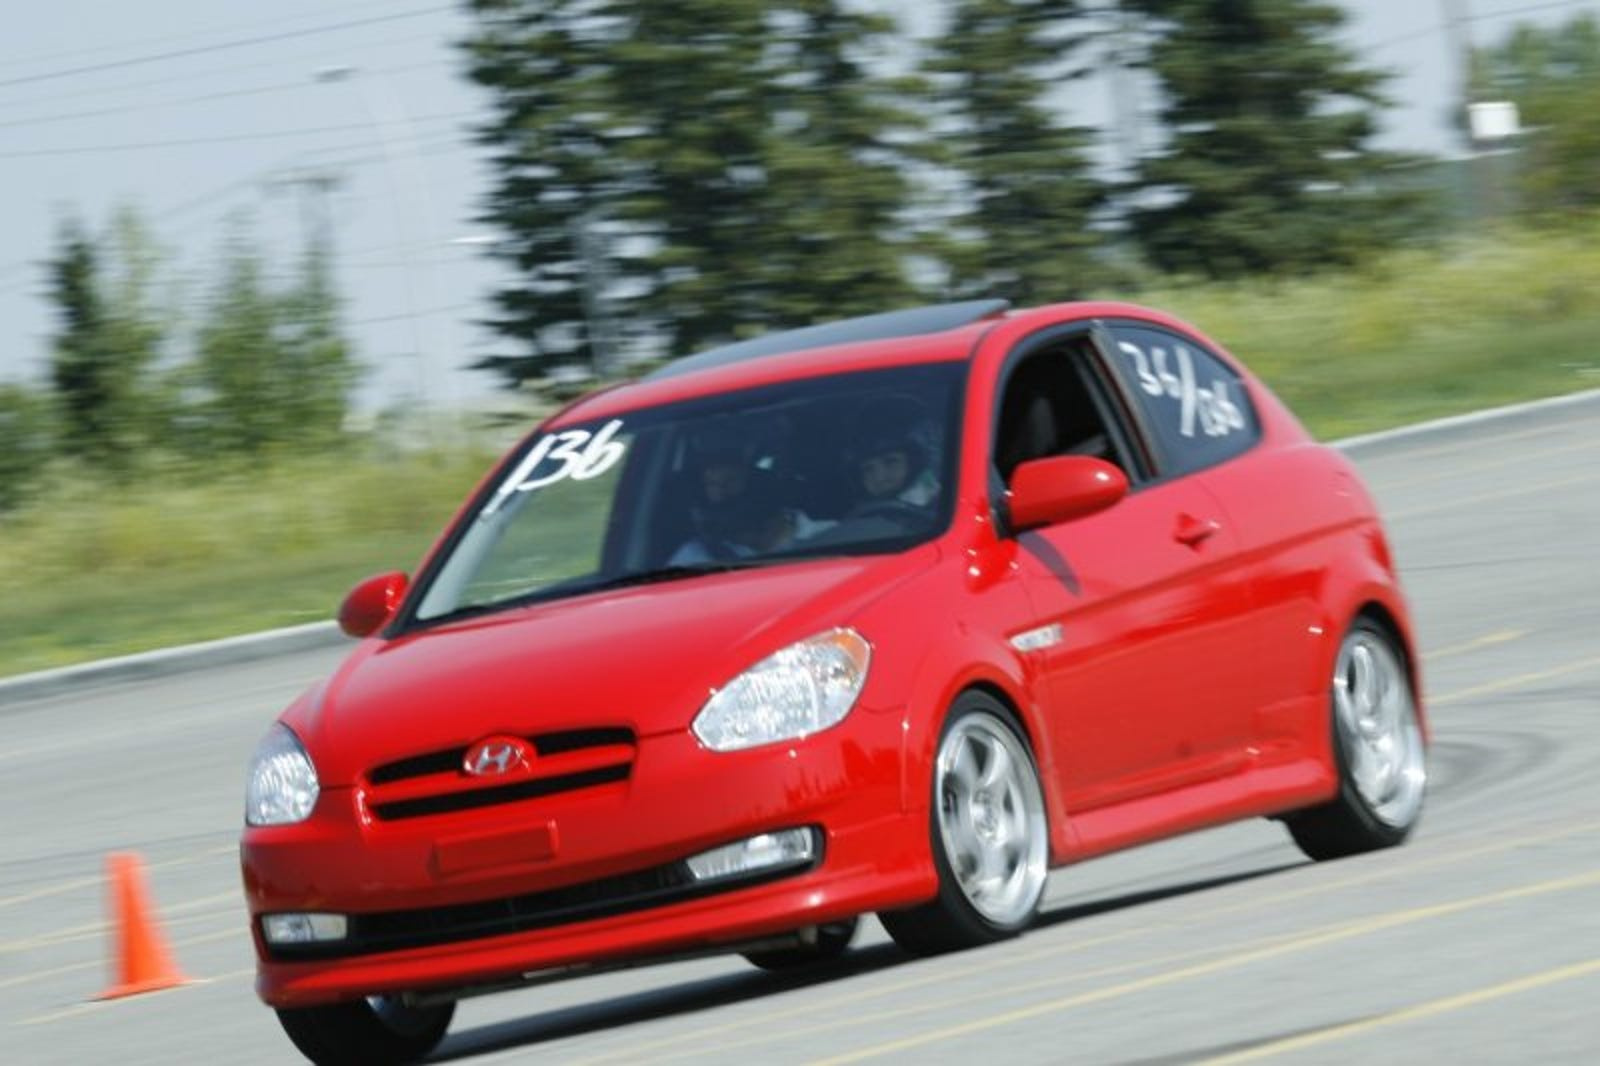 Illustration for article titled Canadas forgotten luke-warm hatch...the Hyundai Accent SR